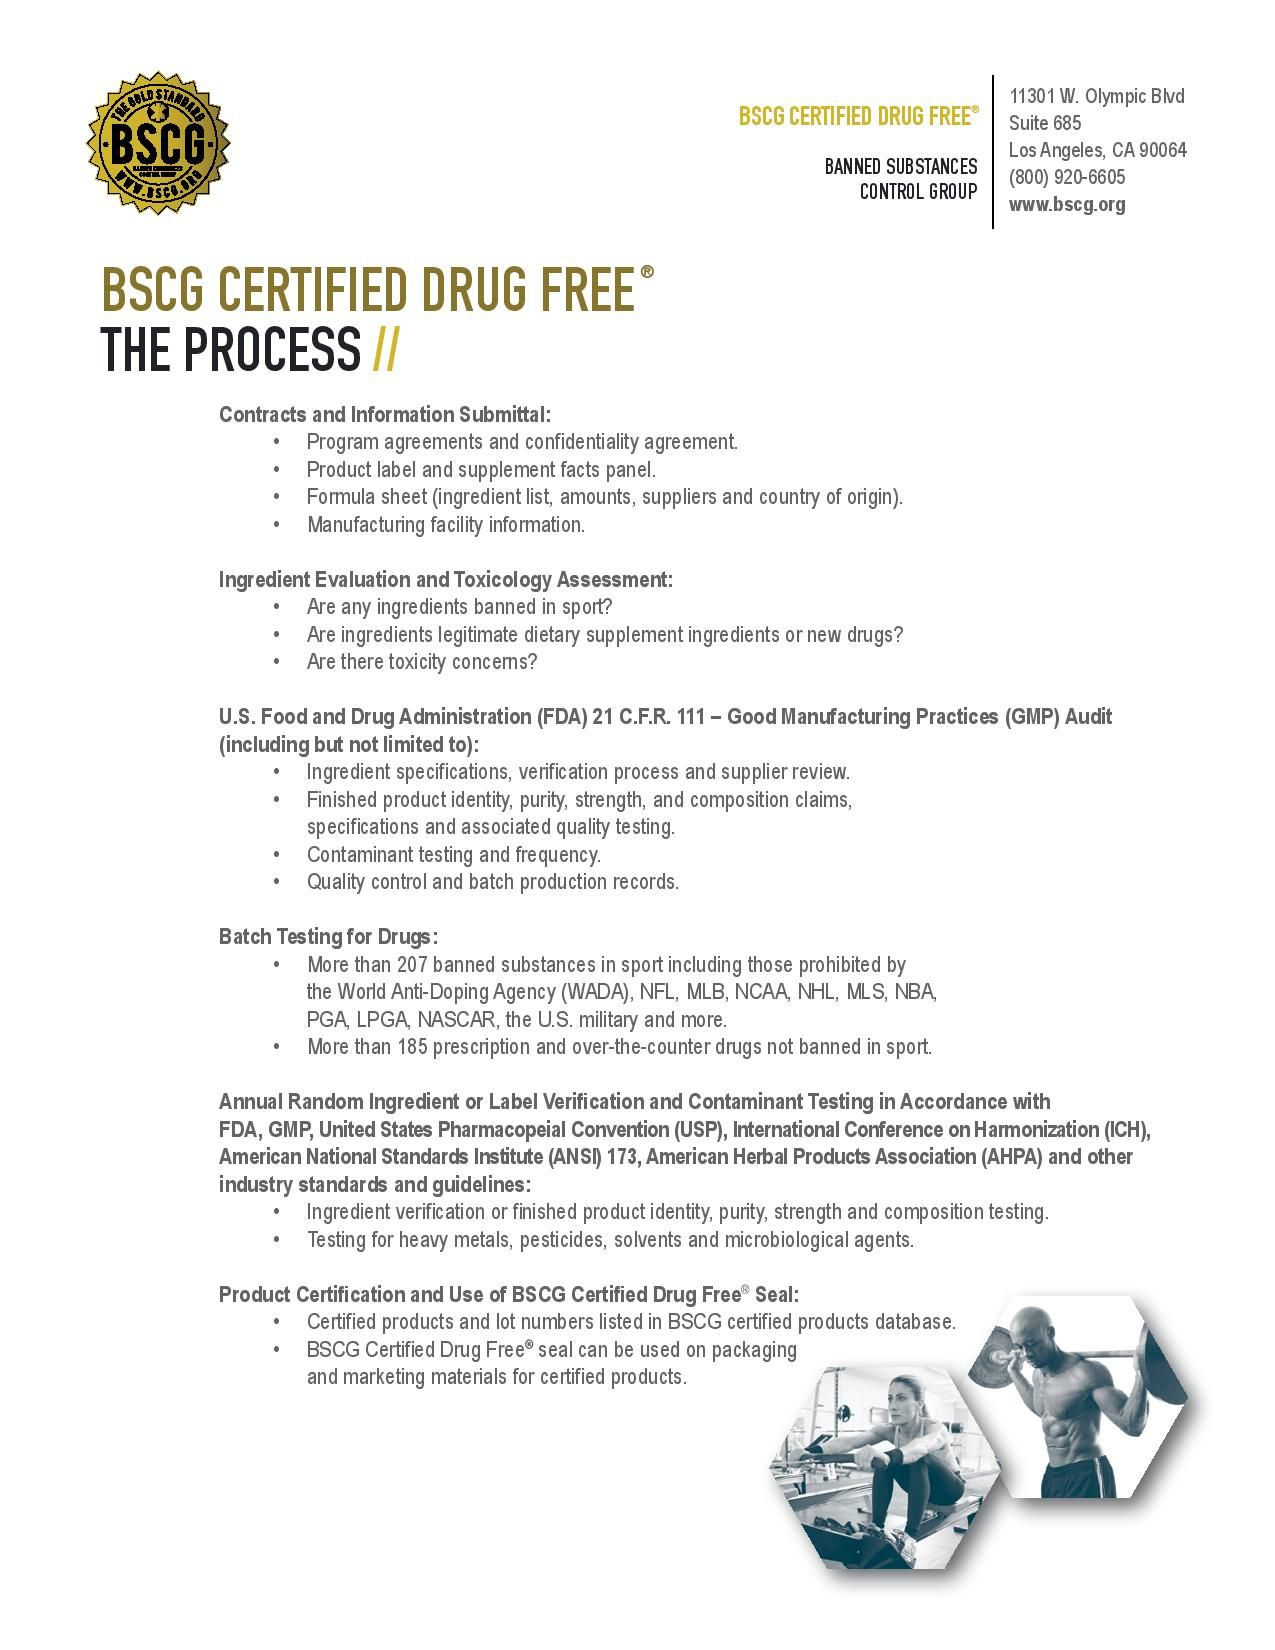 Bscg Certified Drug Free Product Certification Process